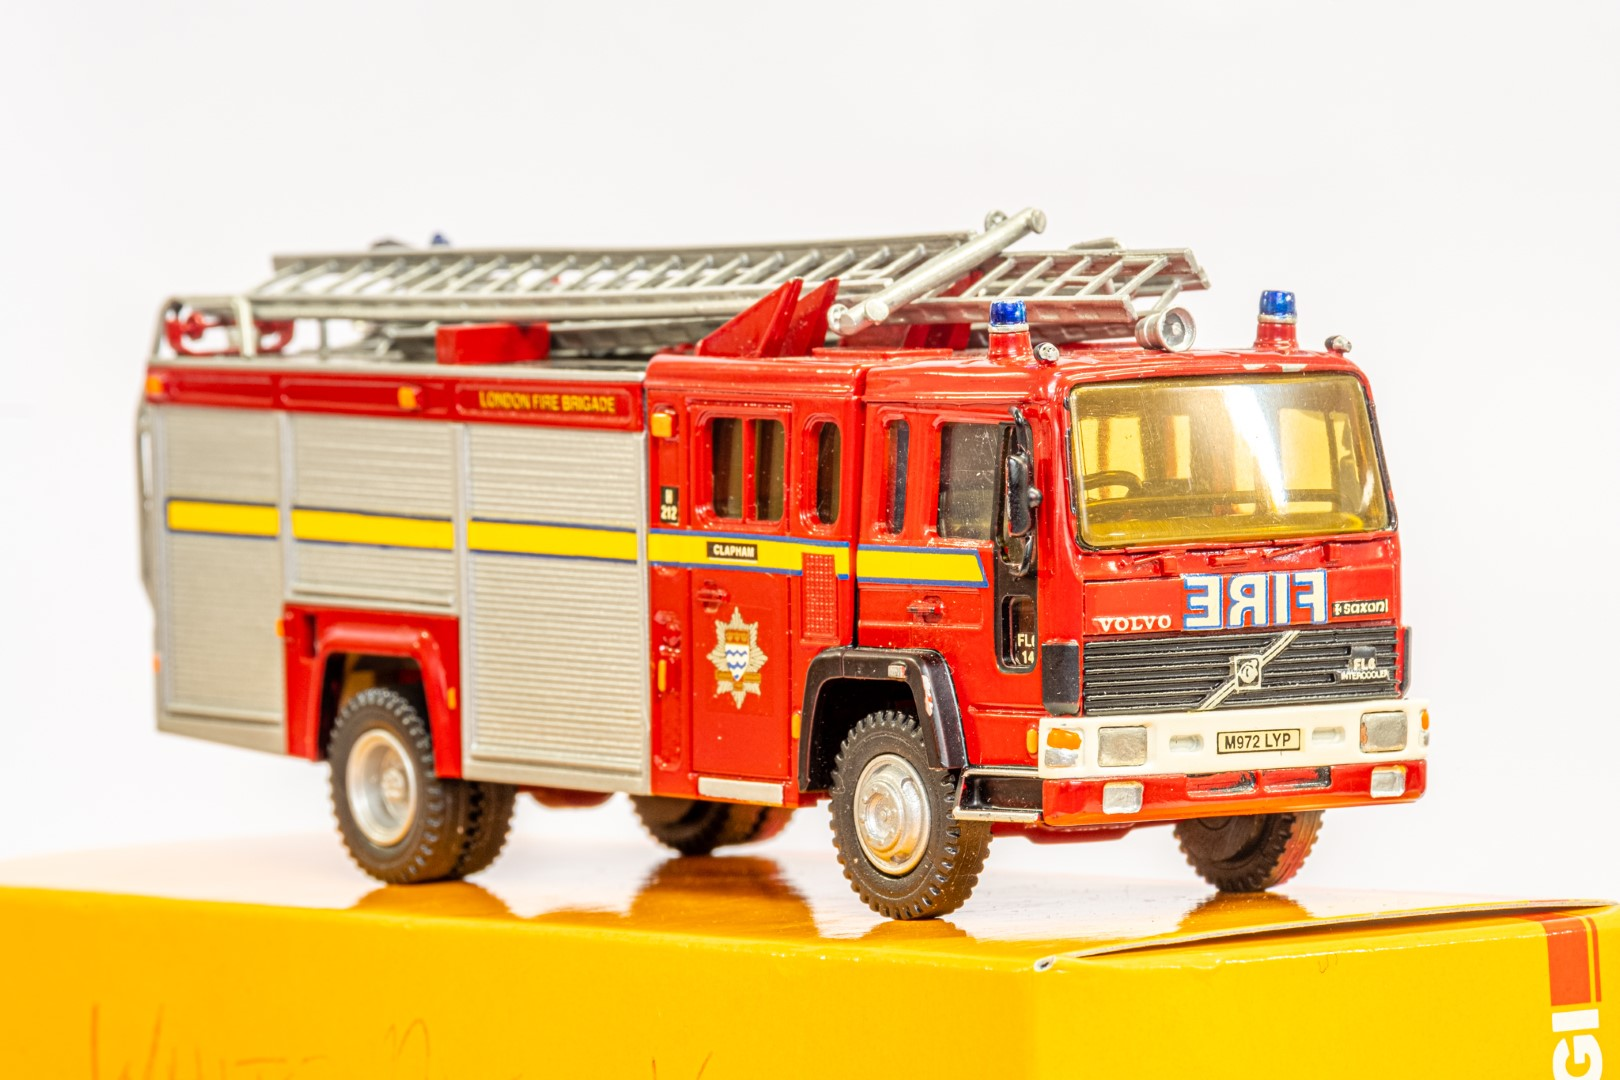 Fire Brigade Models Volvo Fire Engine - Clapham Fire Brigade - In Wrong Box - Image 7 of 7